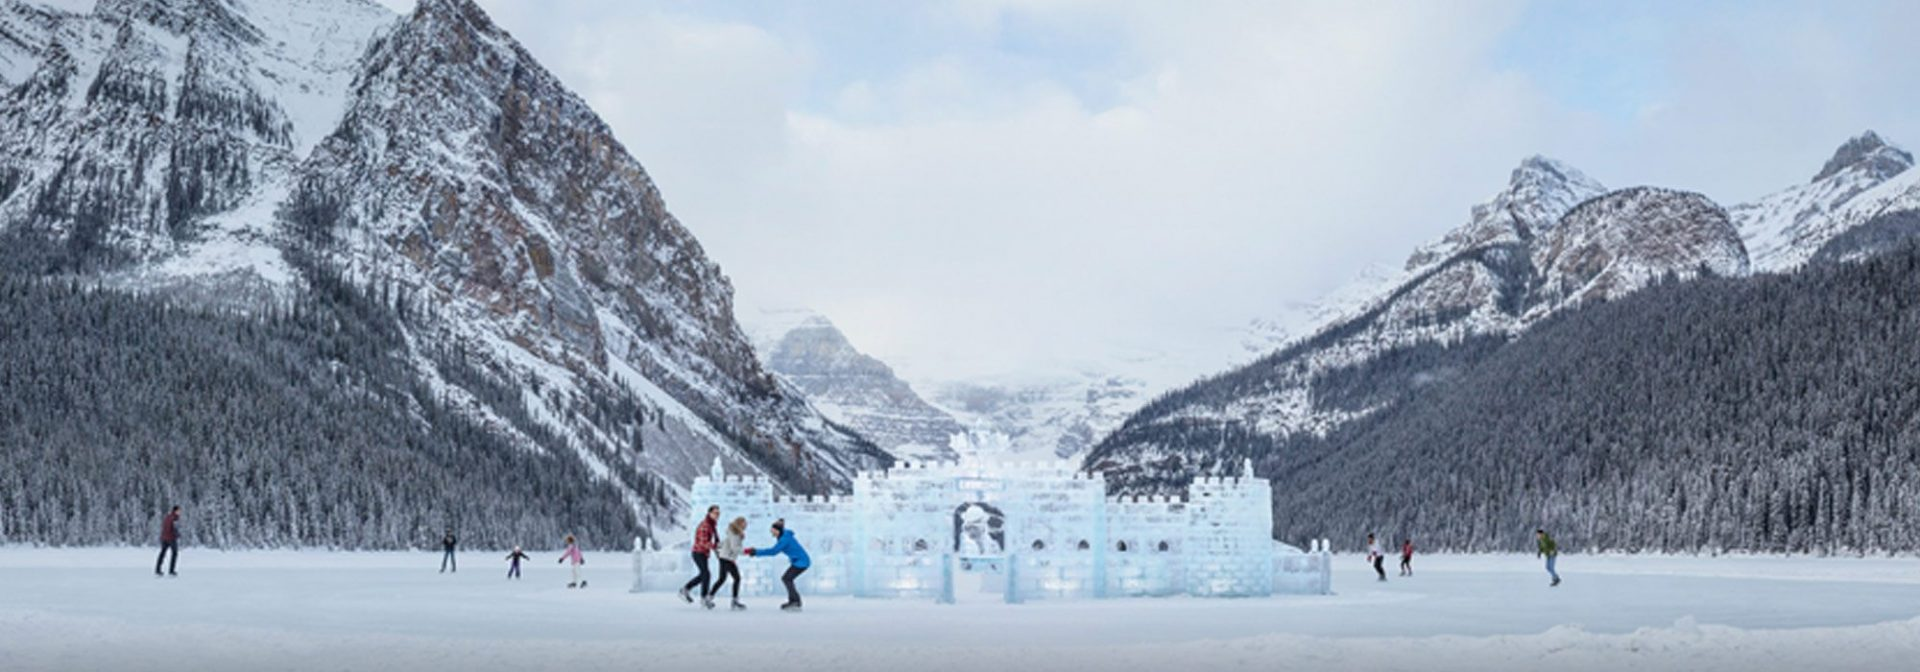 The Ice Magic Festival is an unmissable highlight of the Banff & Lake Louise social calendar. Photo: Travel Alberta